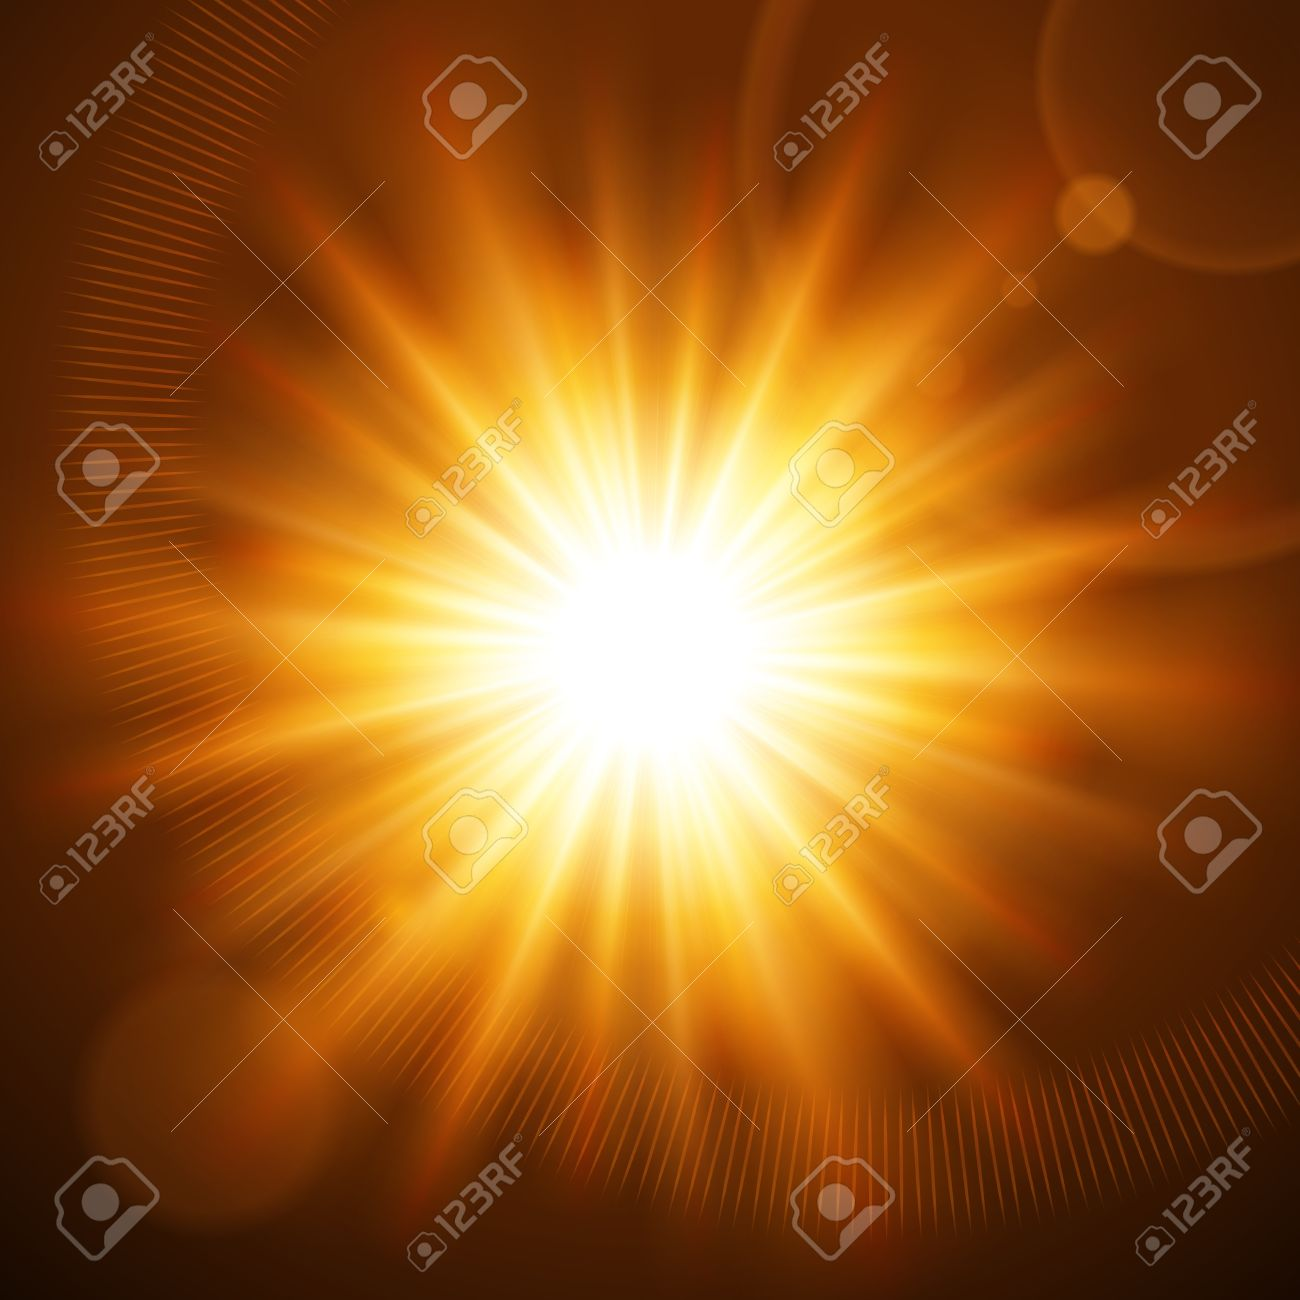 Abstraction light with lens flare vector background Stock Vector - 13908280